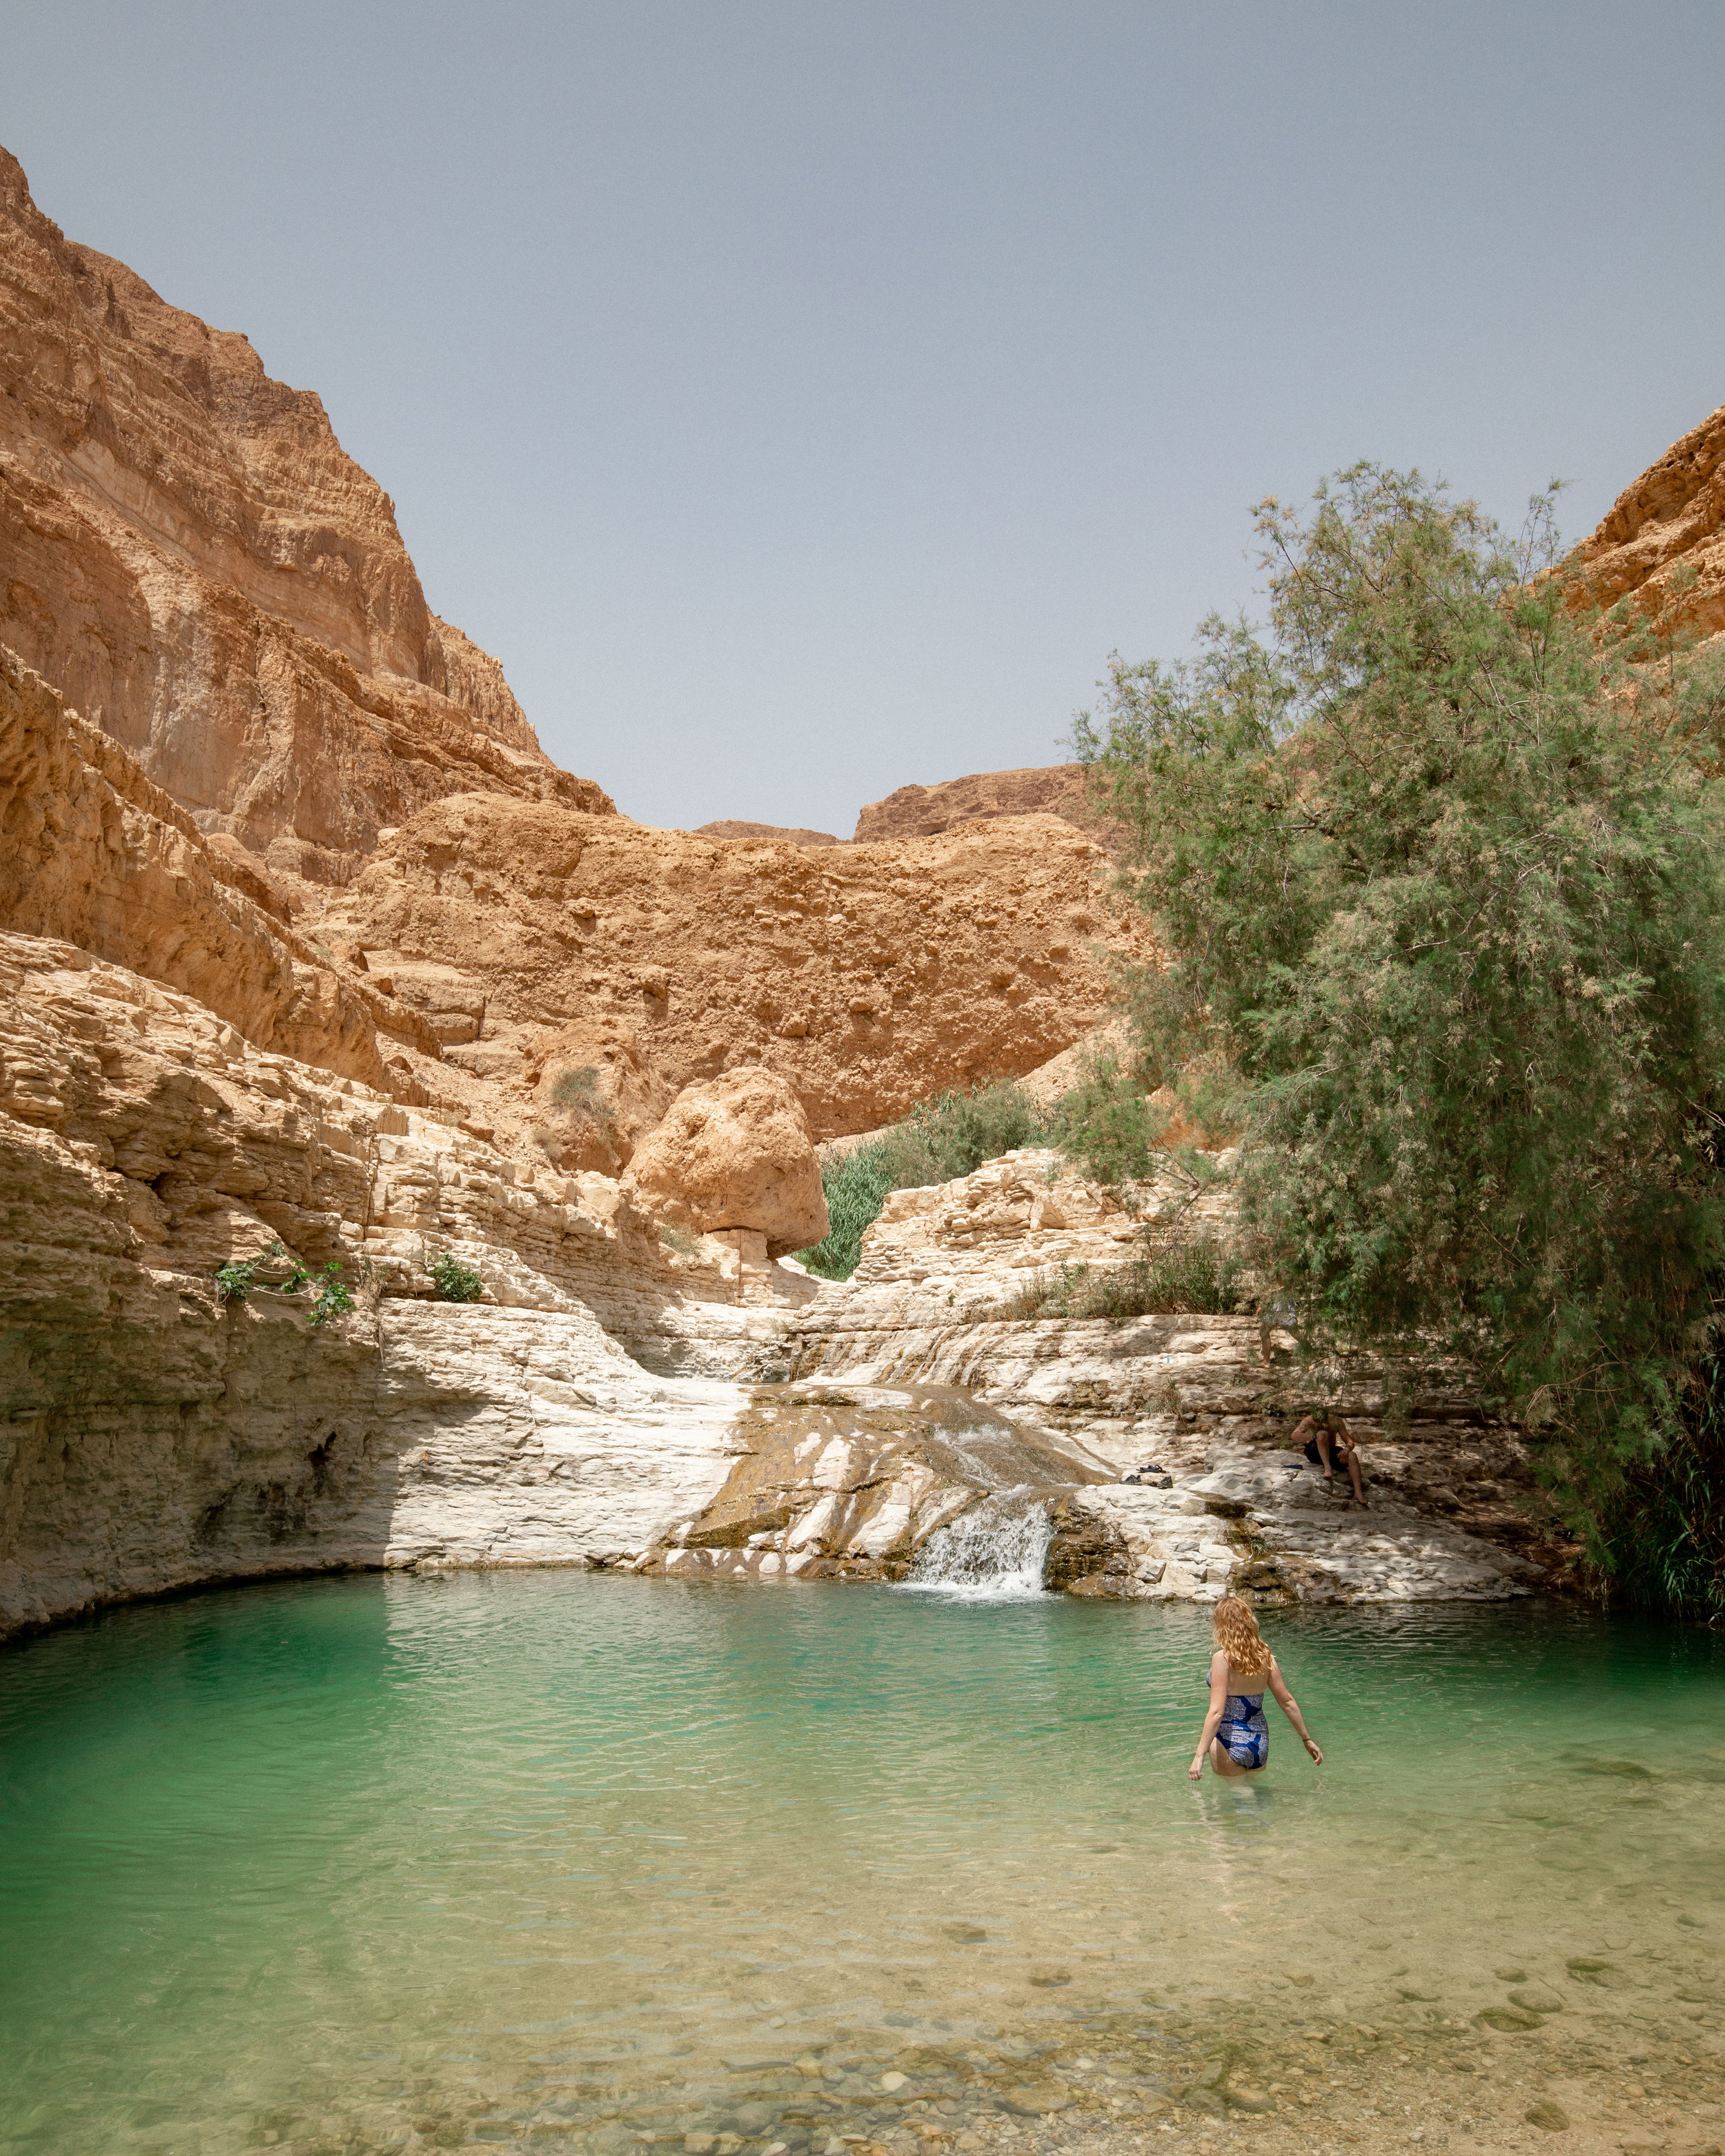 The stunning Upper Pool at Wadi Arugot